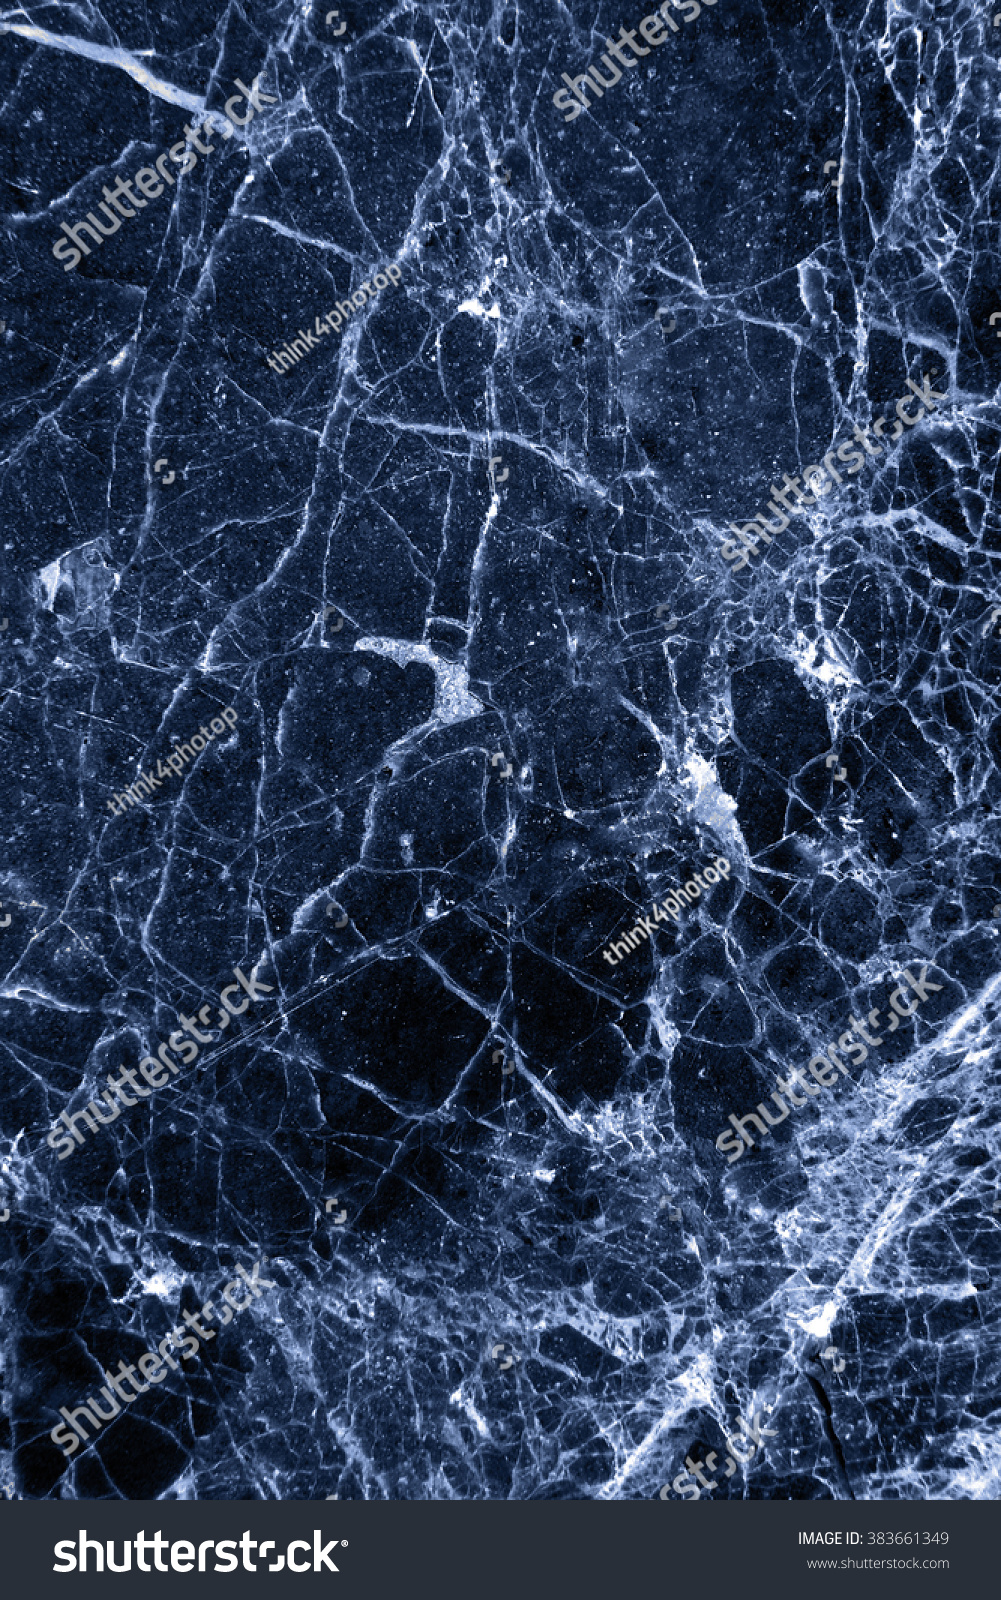 Dark Blue Marble : Marble patterned texture background surface dark stock